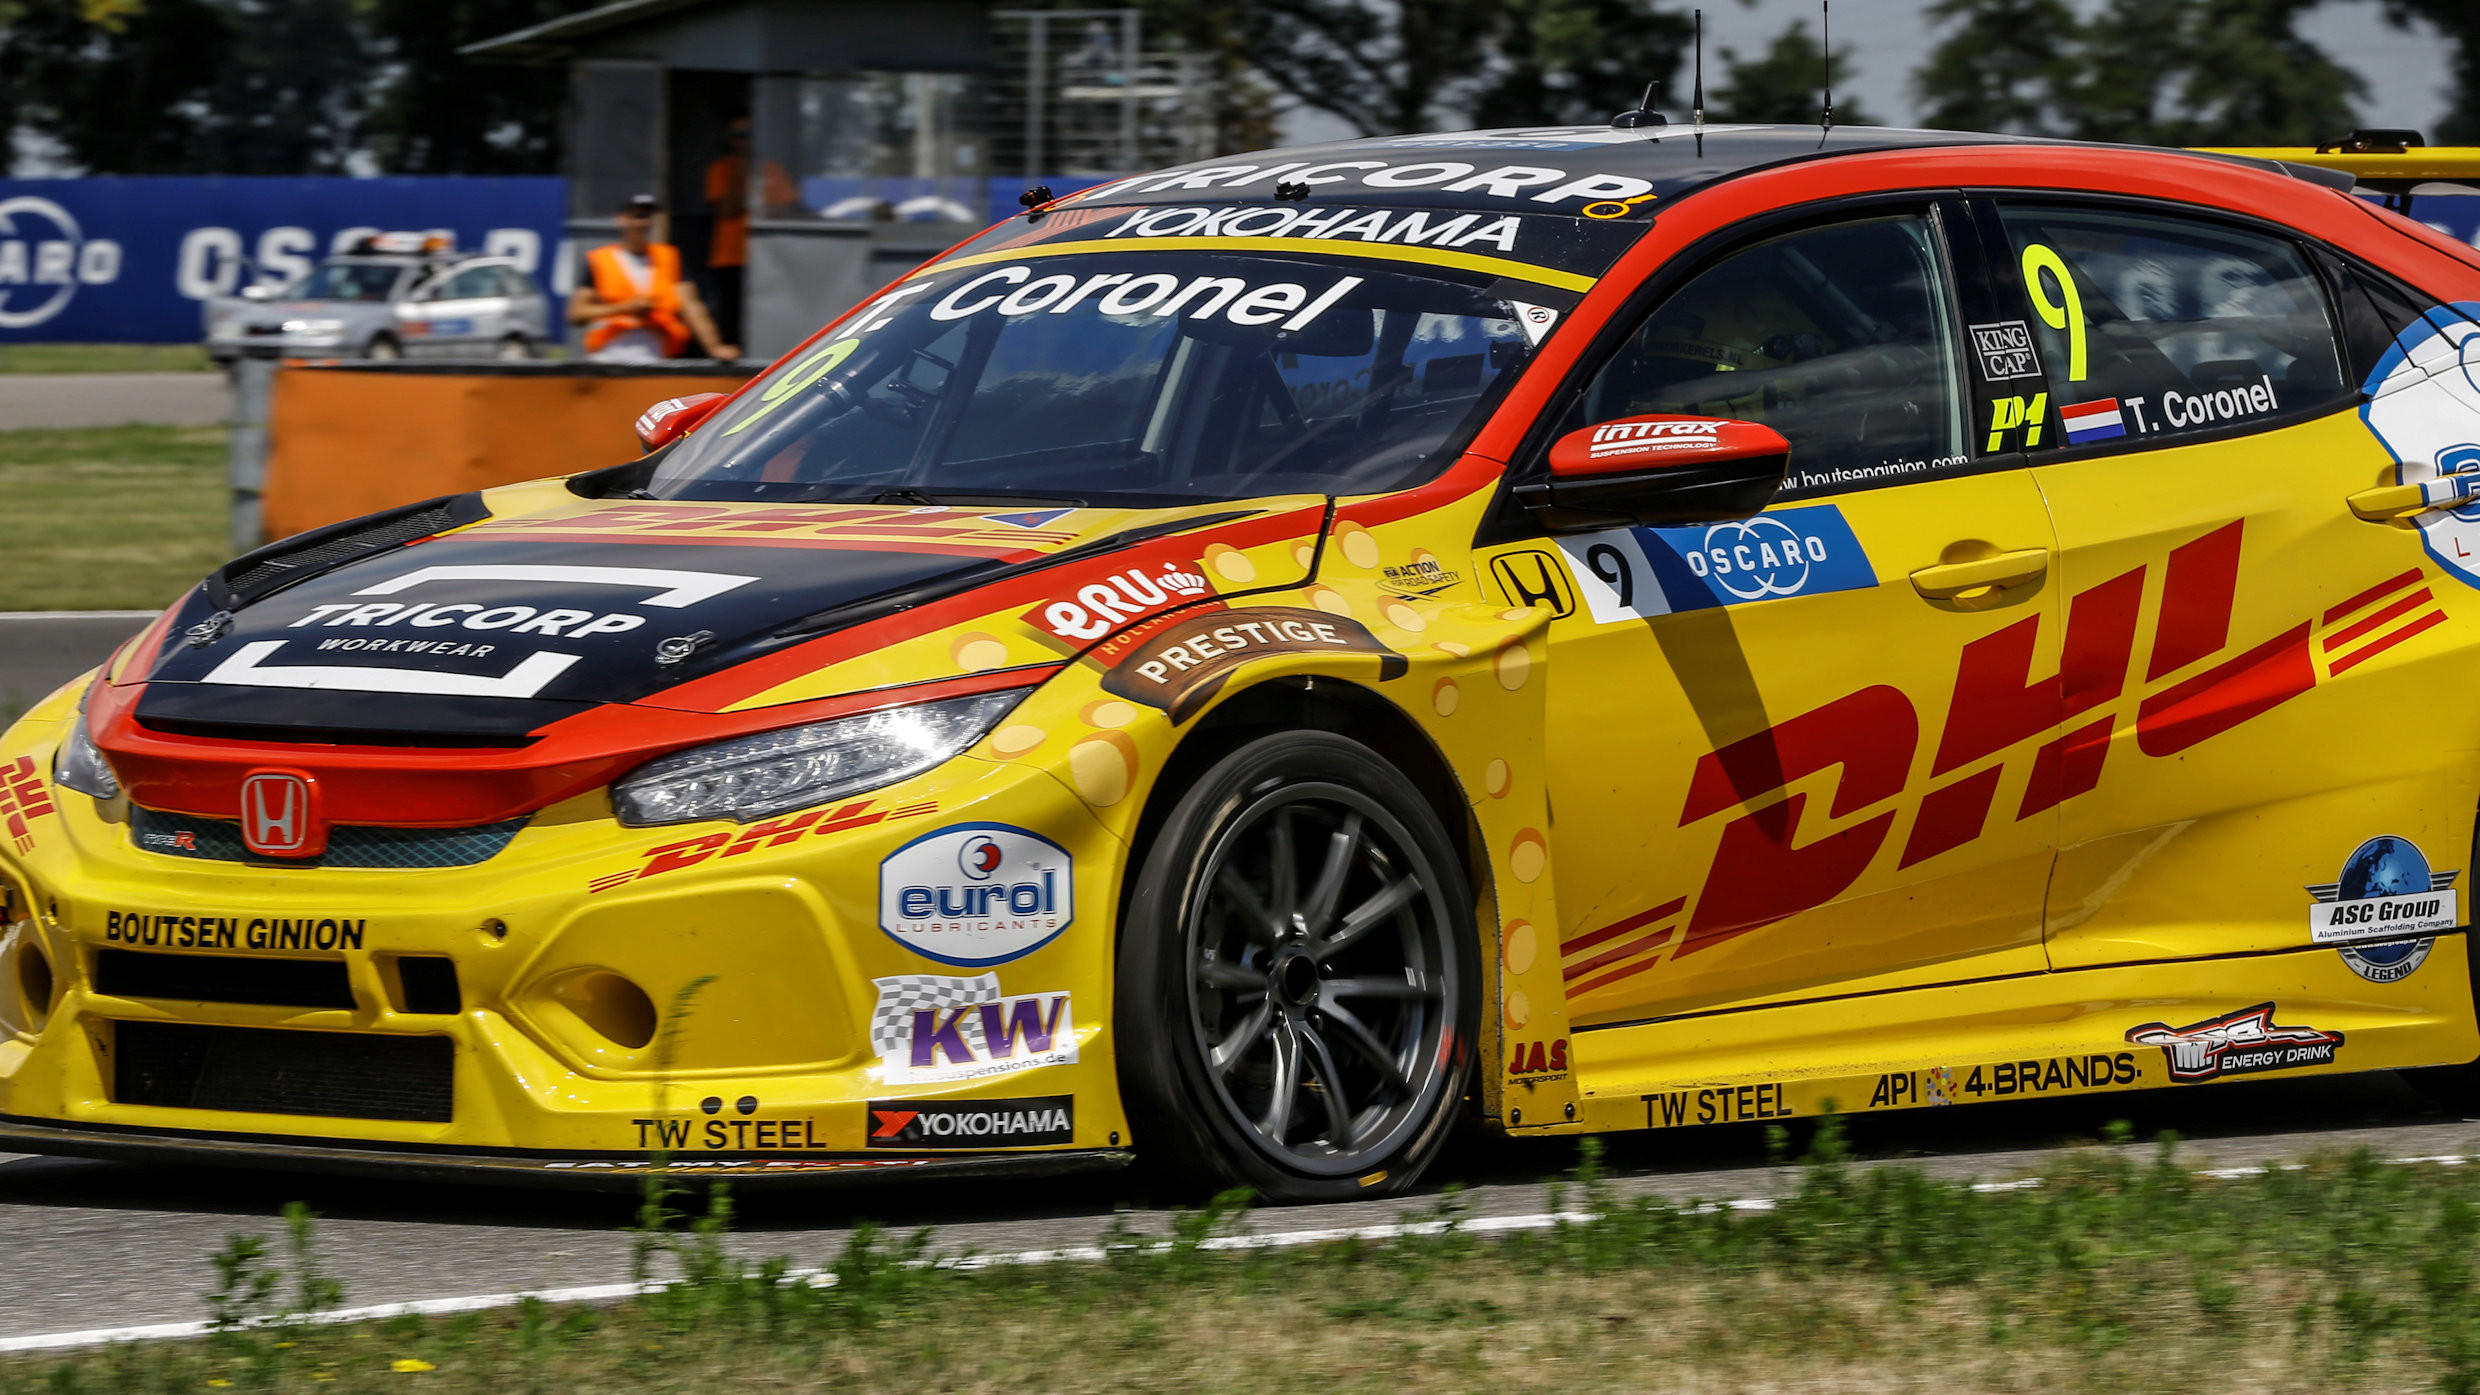 Tom Coronel Tom Coronel Hopes Tyre Puncture Issues Have Been Resolved